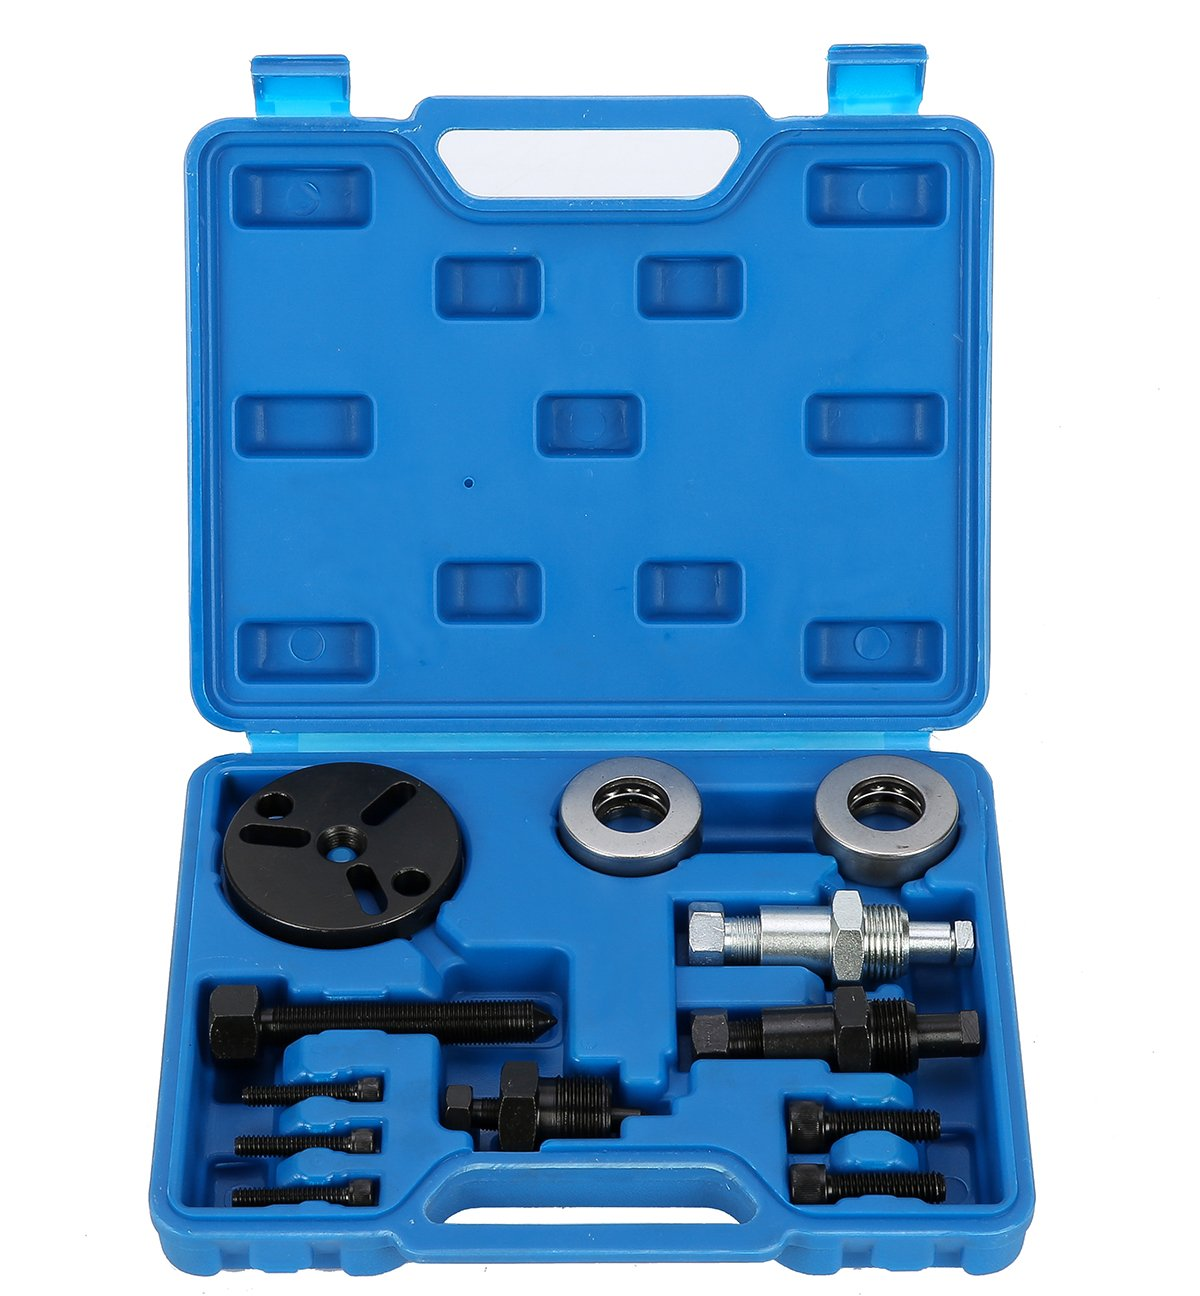 A//C Compressor Clutch Puller Tool Kit Automotive Car Air Conditioner Remover